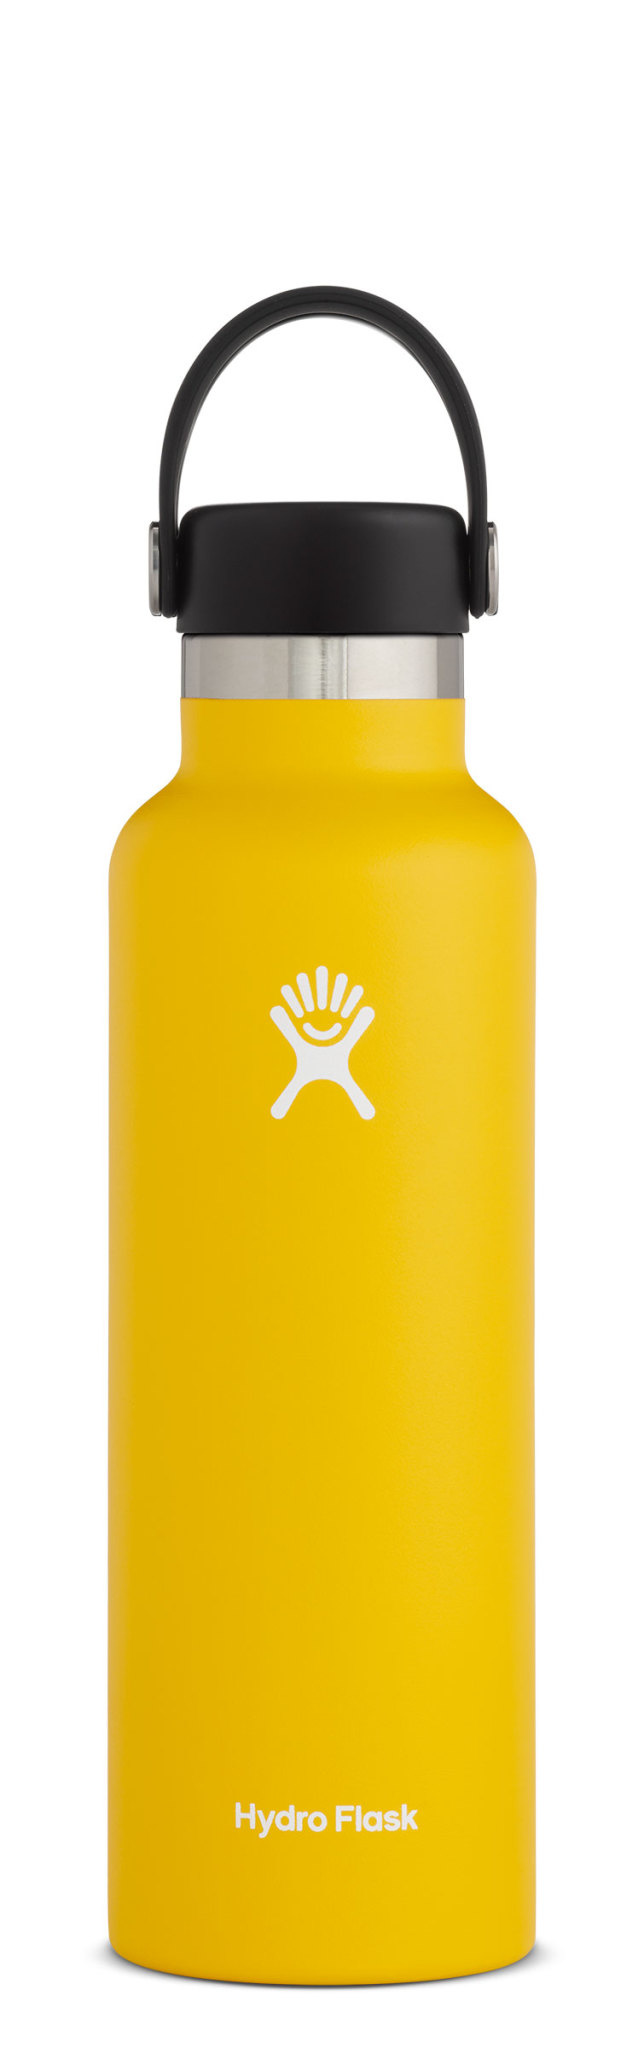 Hydro Flask 21oz Standard Mouth with Standard Flex Cap-2